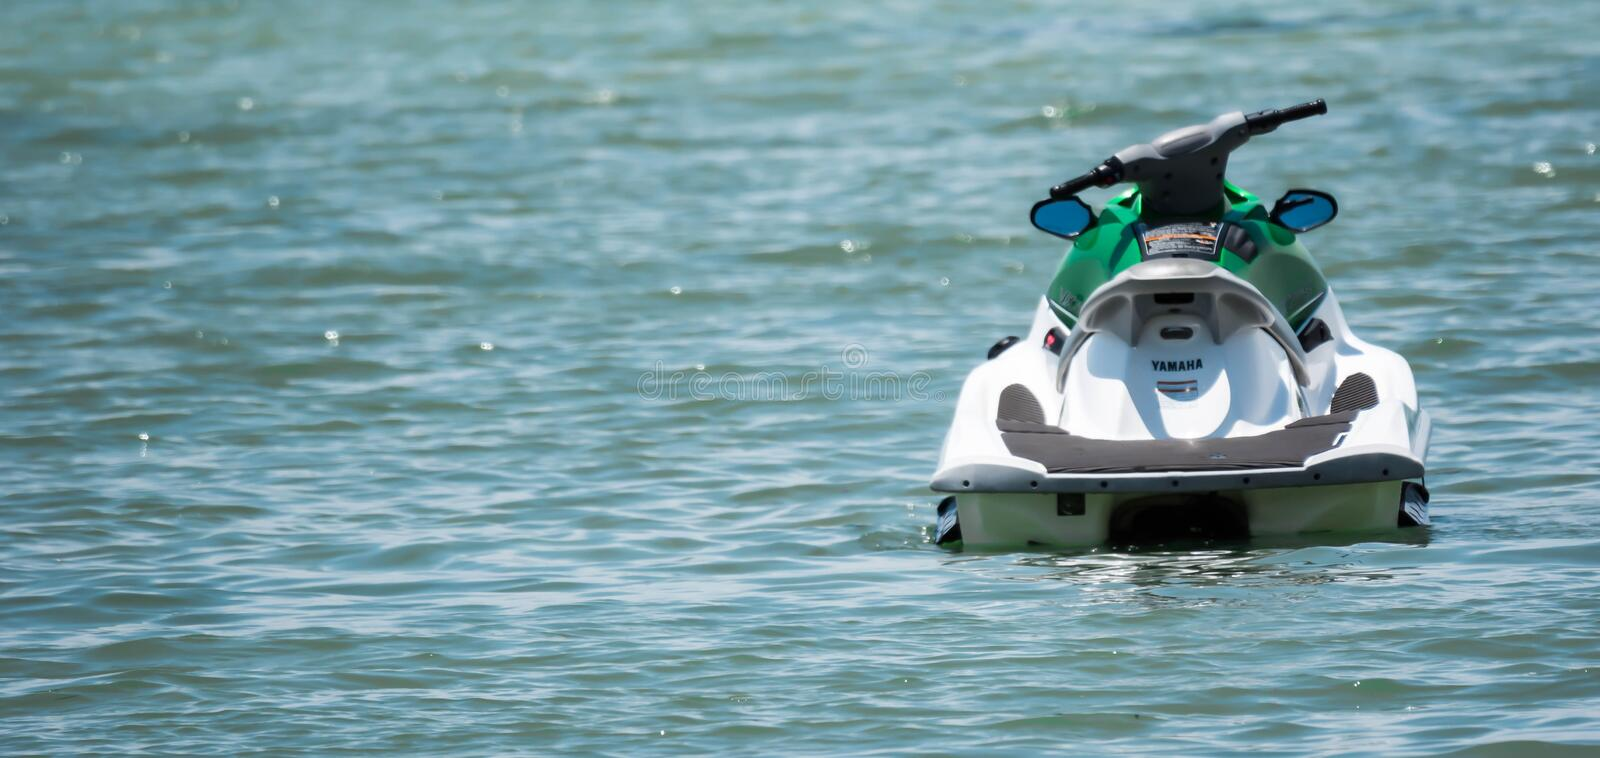 A yamaha jetski while parked and floating on a beach resort, Bintan Indonesia, December 16, 2018. A white yamaha jetski while parked and floating on a beach stock images